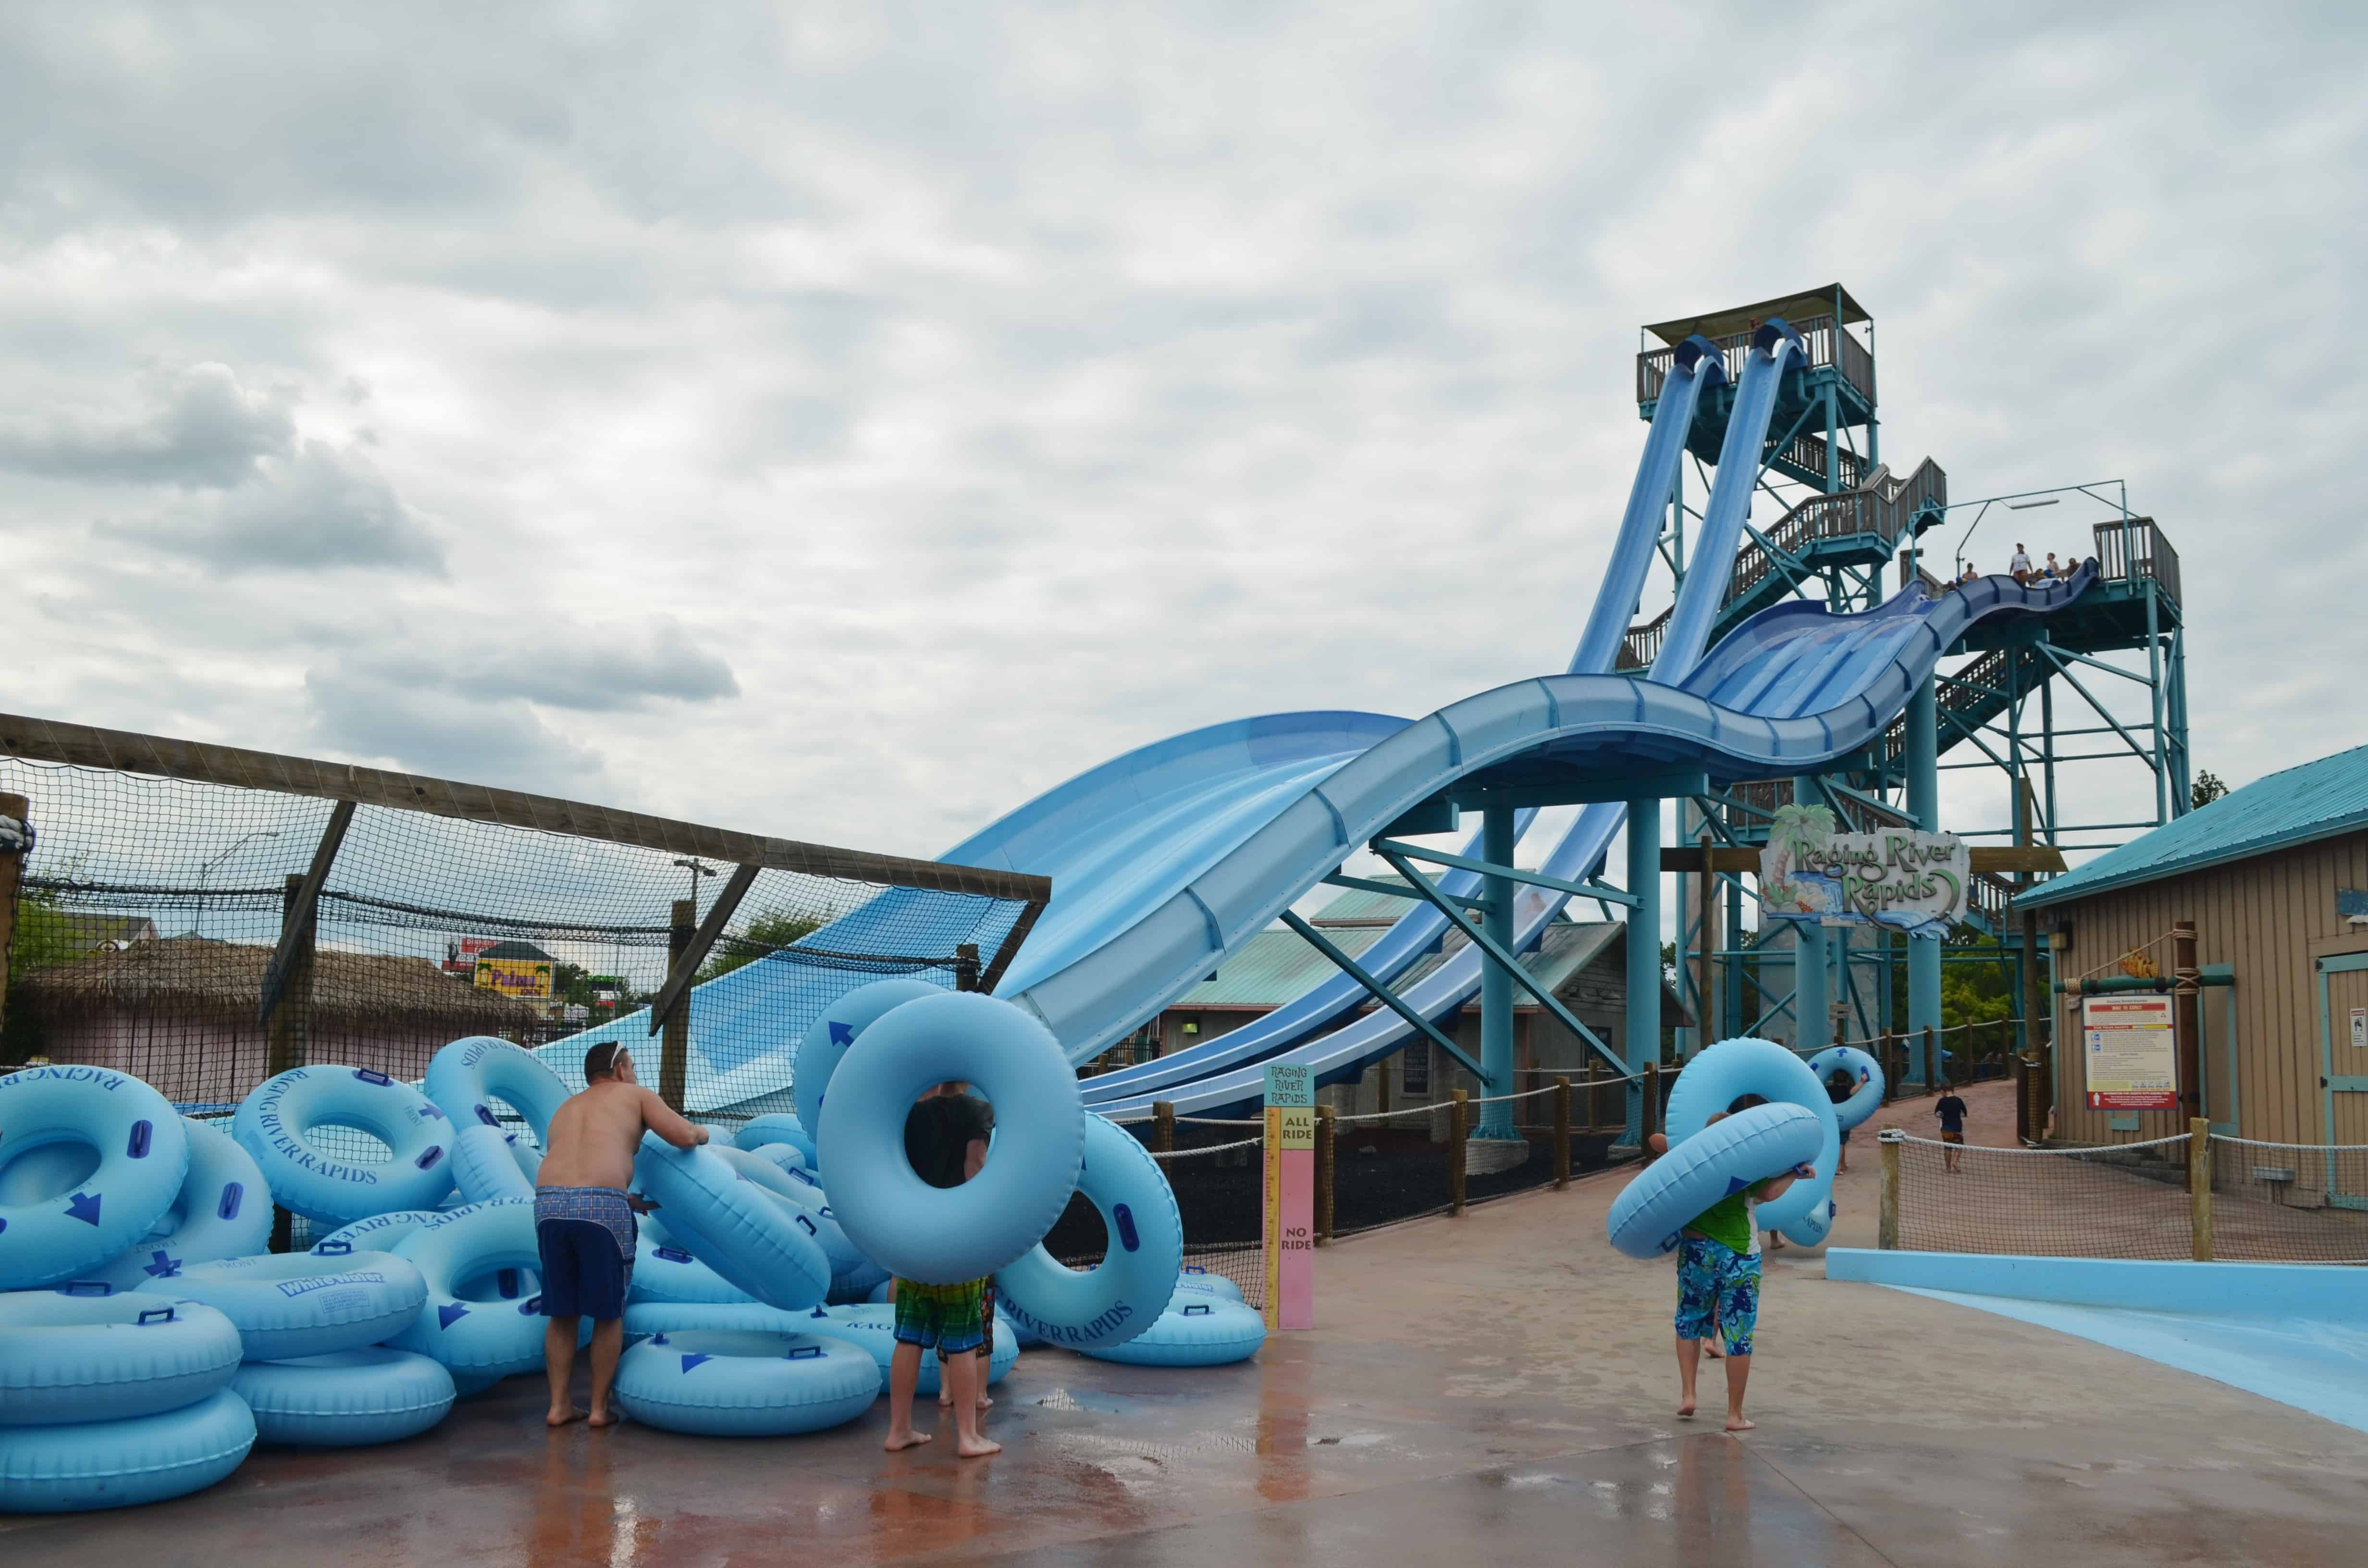 Our Family Trip To White Water Explorebranson Sdcattractions